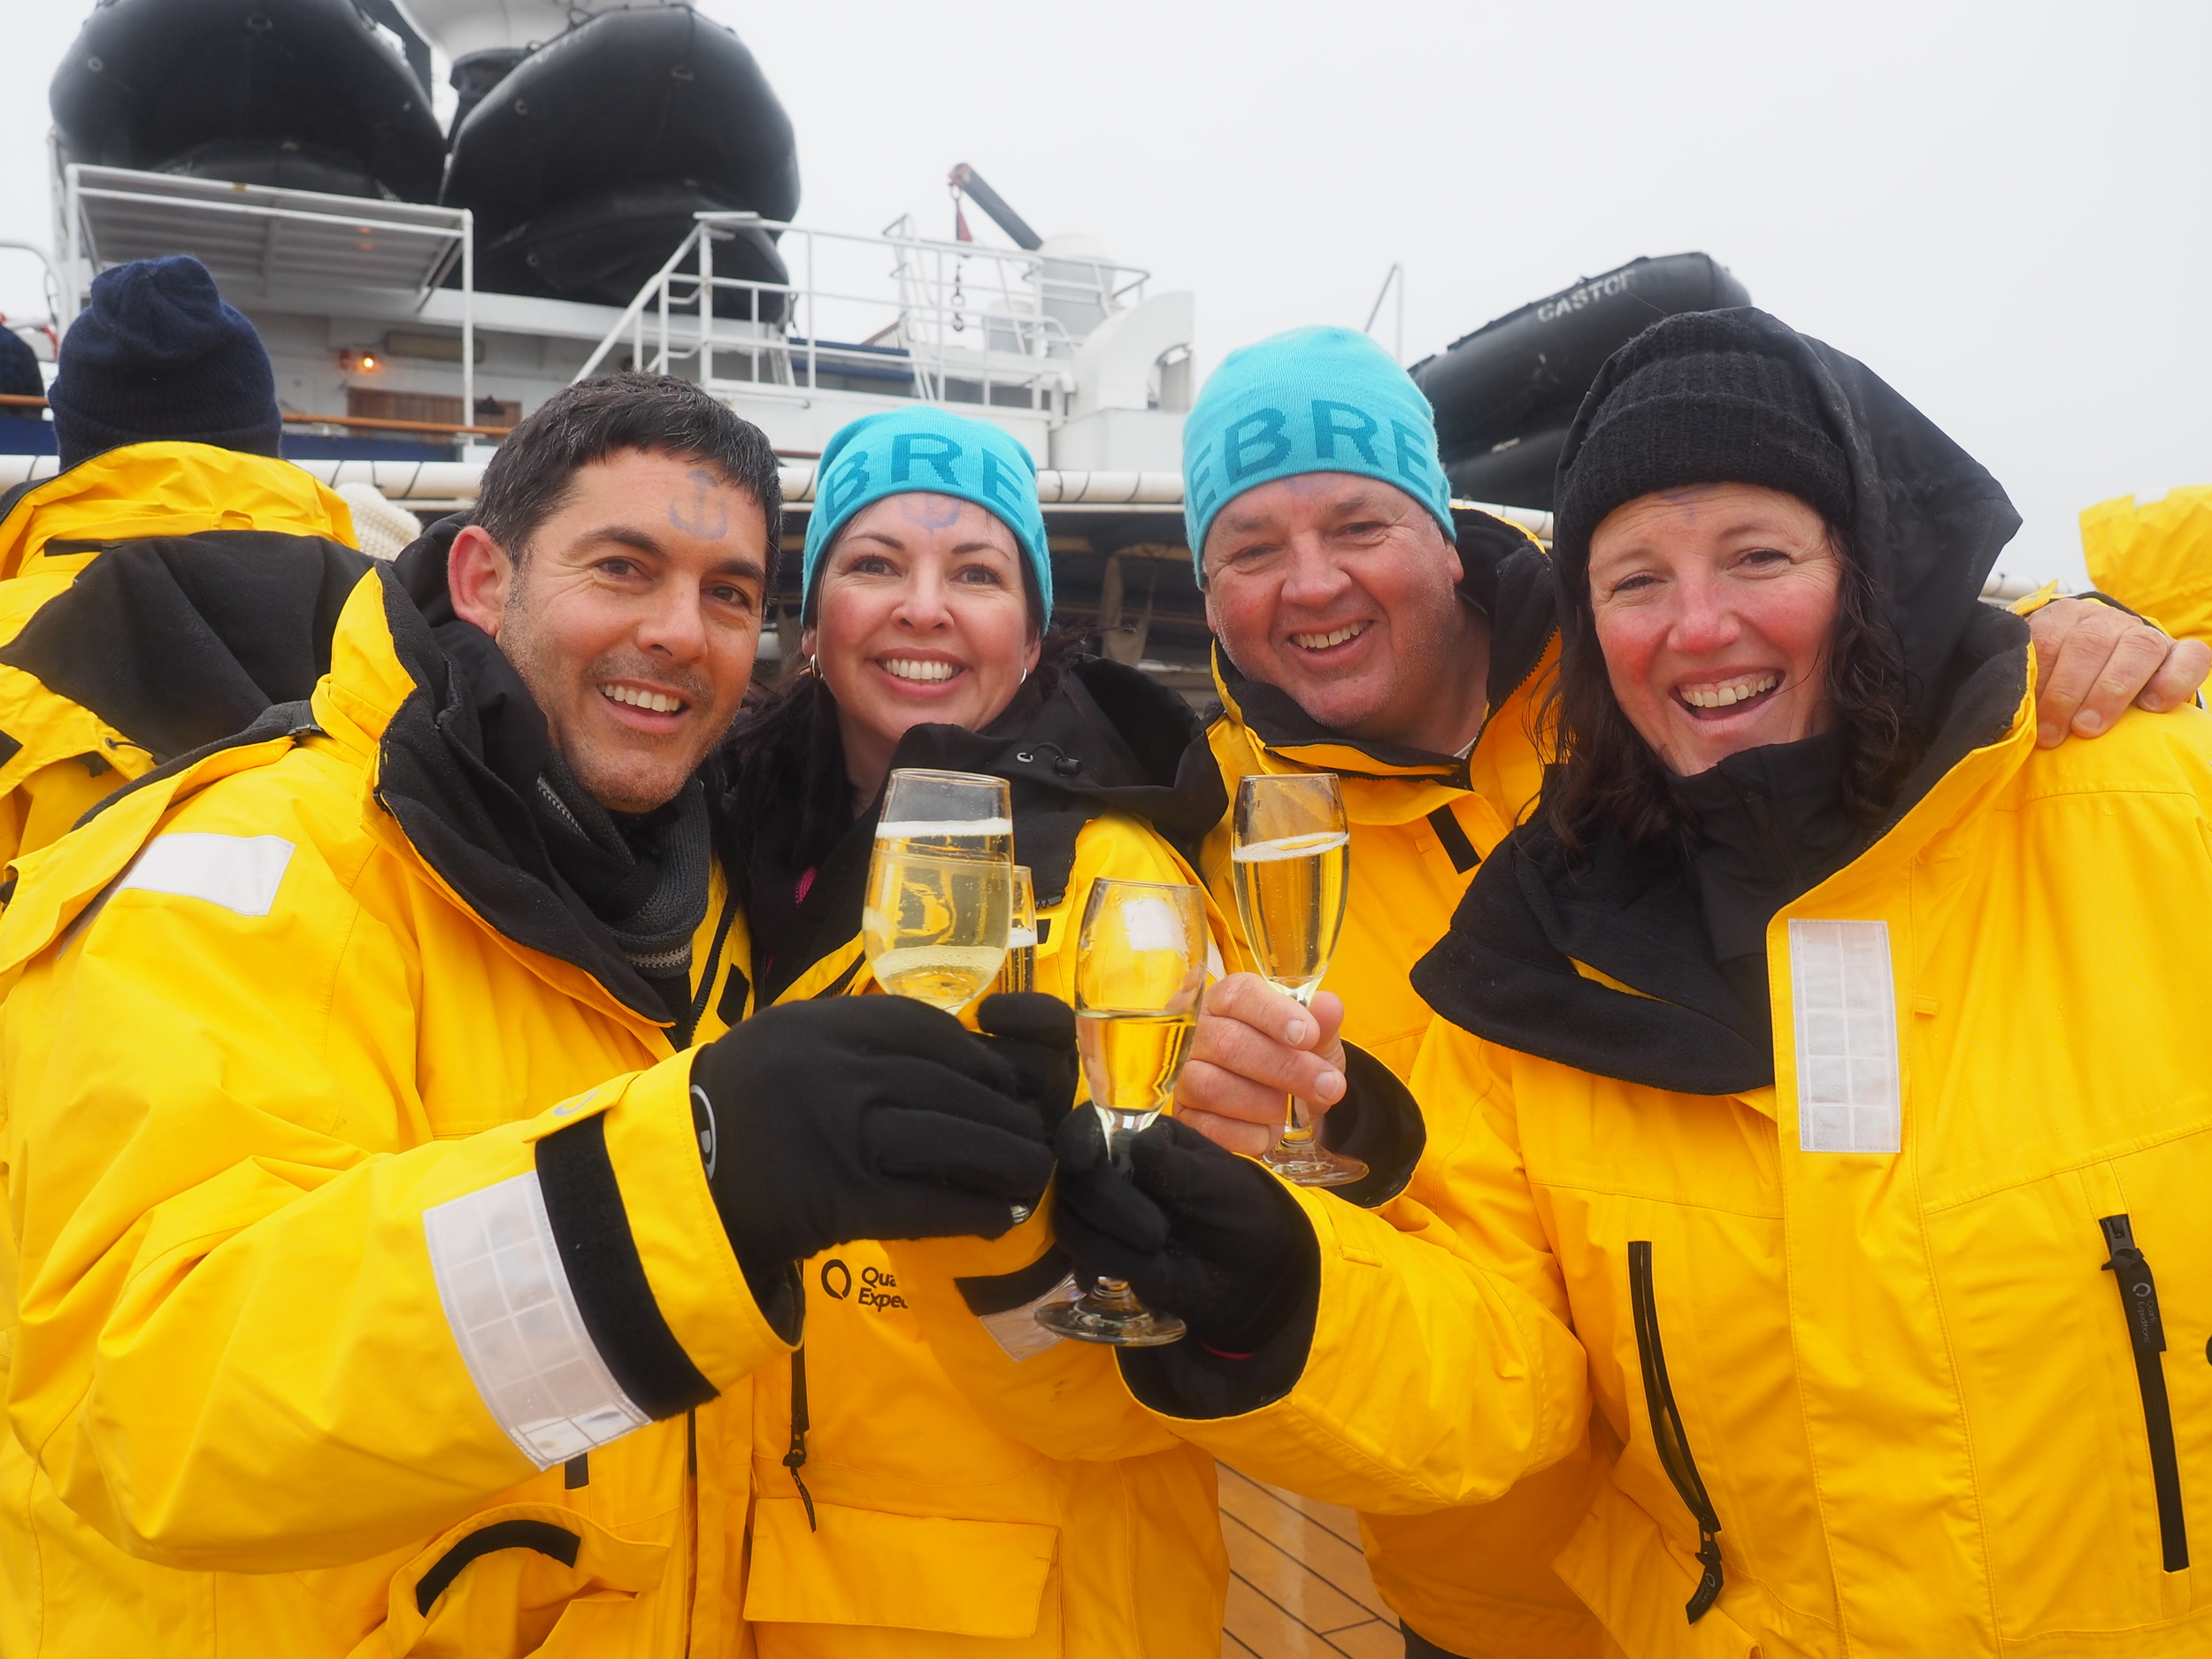 (L-R): Jeff & Donna Ghaemaghamywith Craig Doyle & Ryll Burgin-Doyle  in Antarctica c elebrating the genesis of 90Degrees Global.